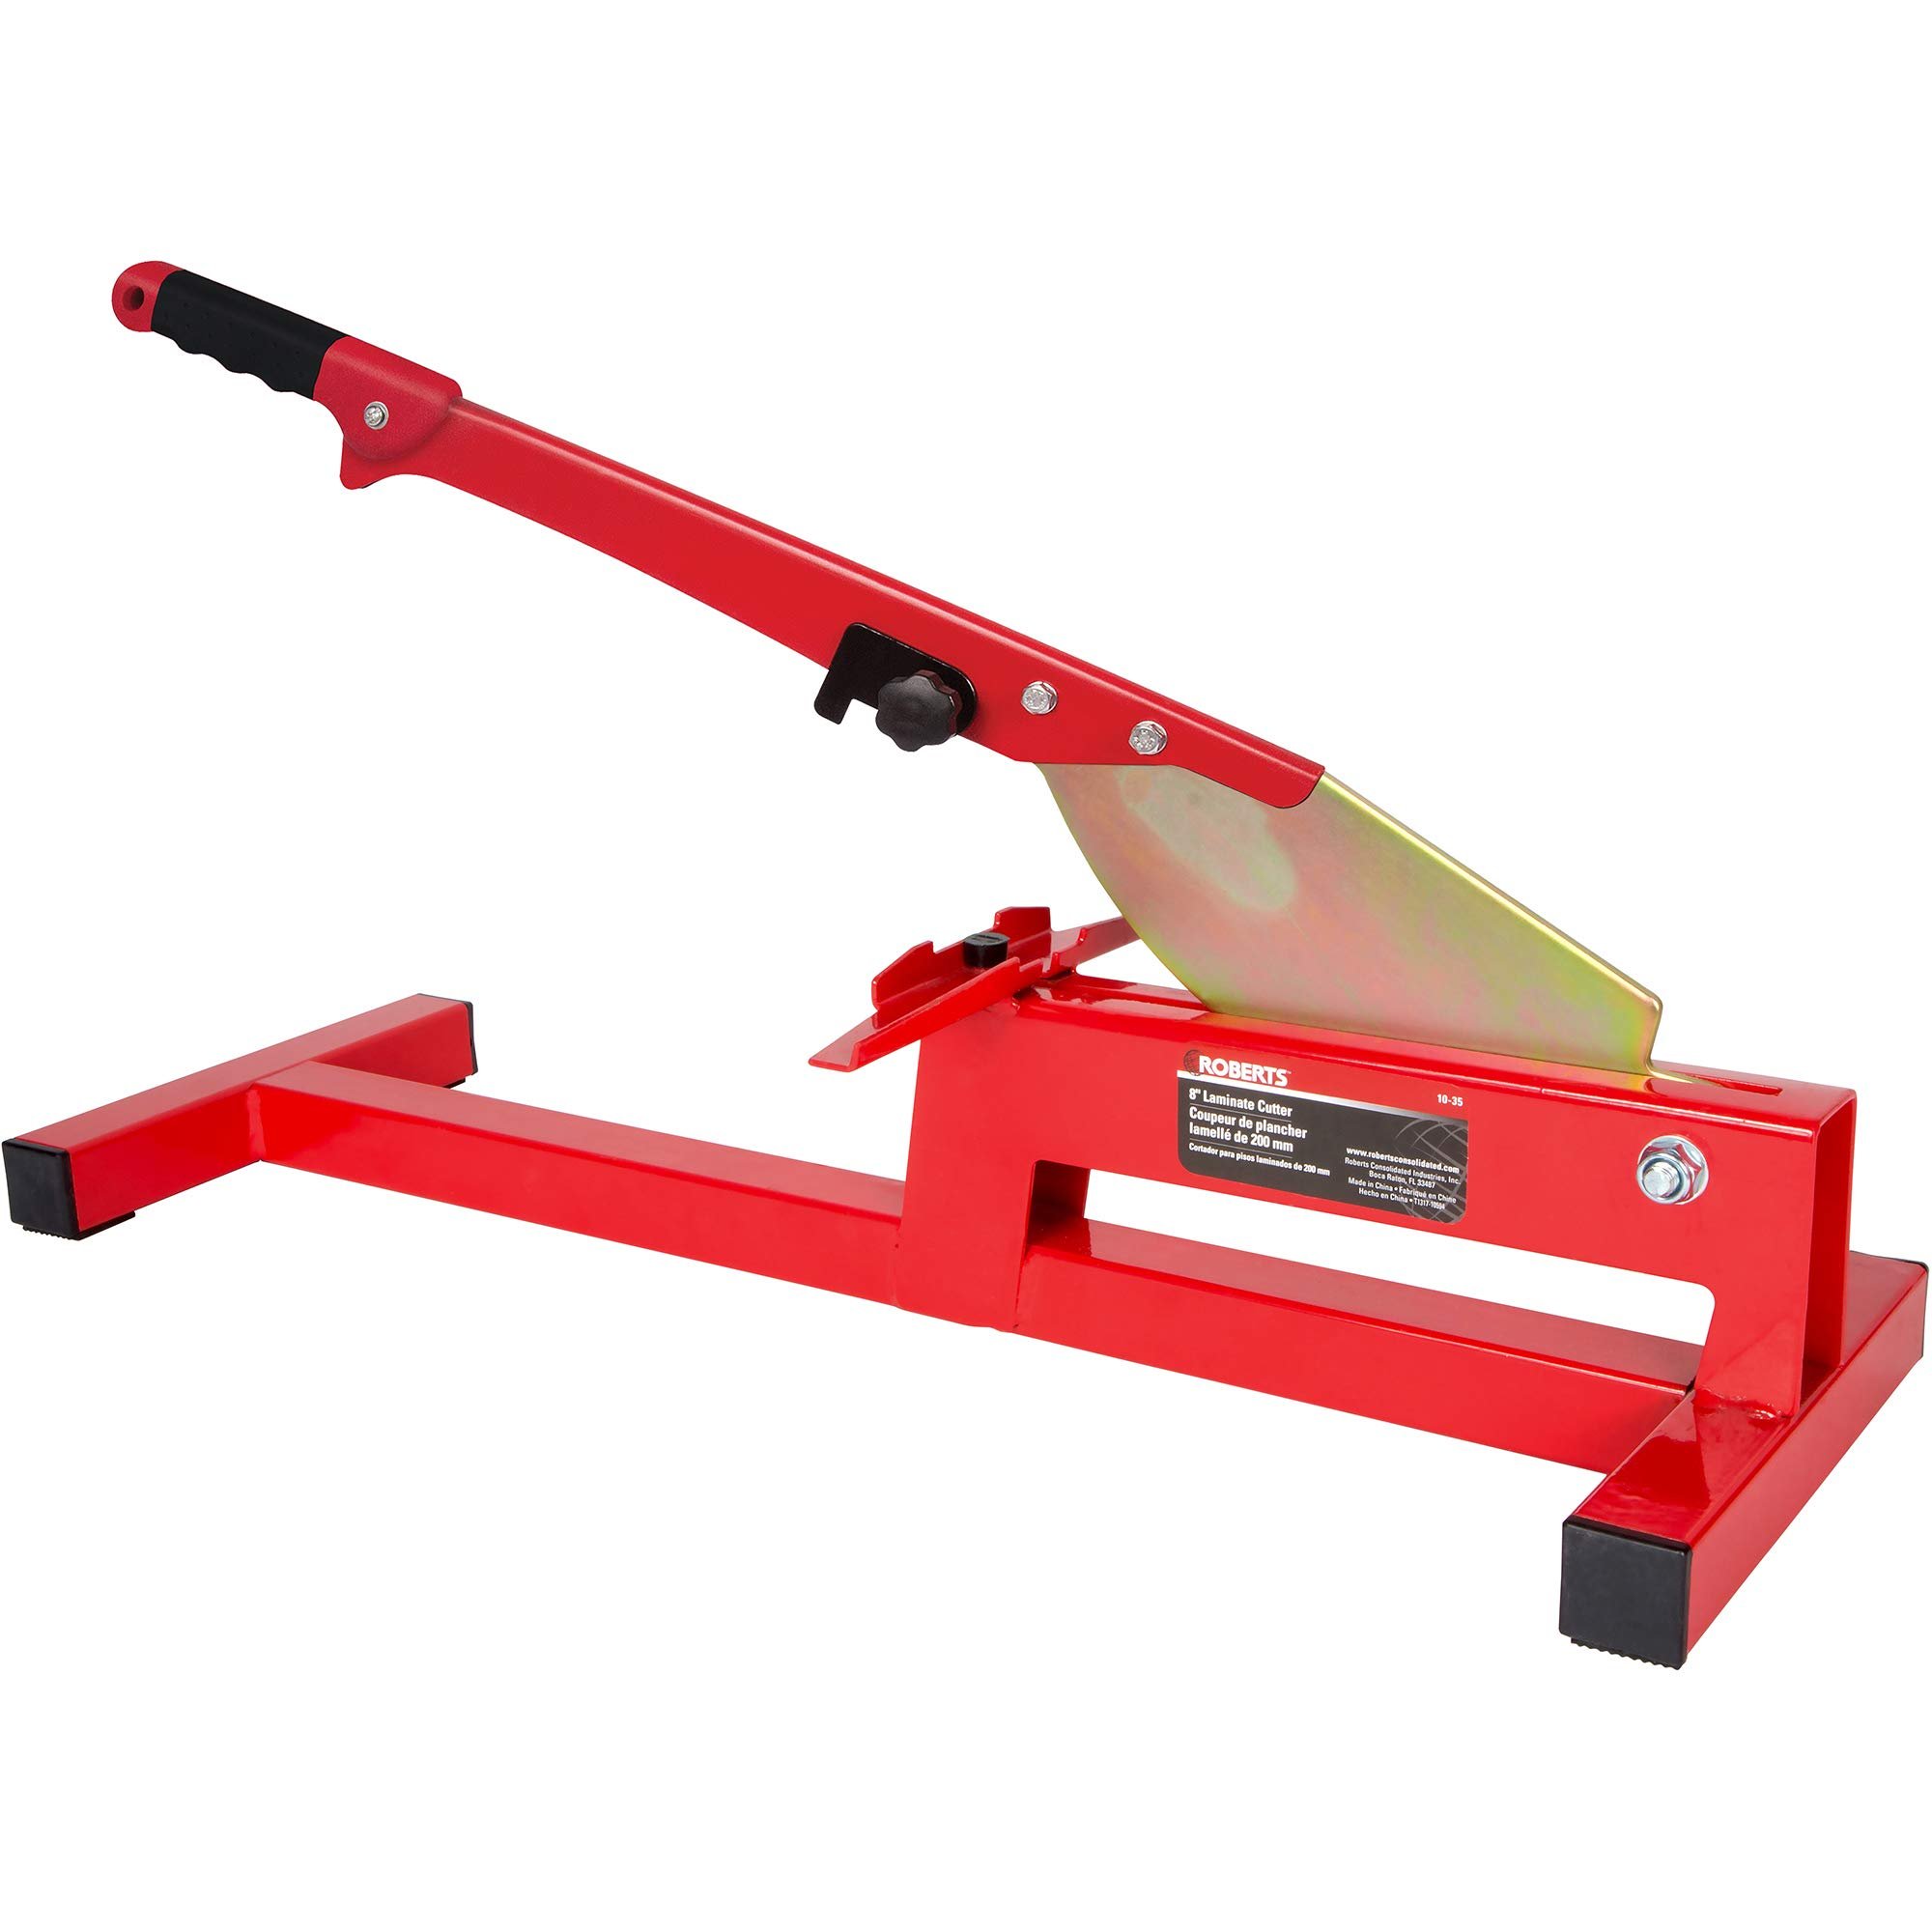 ROBERTS 10-35 Laminate Cutter by Roberts